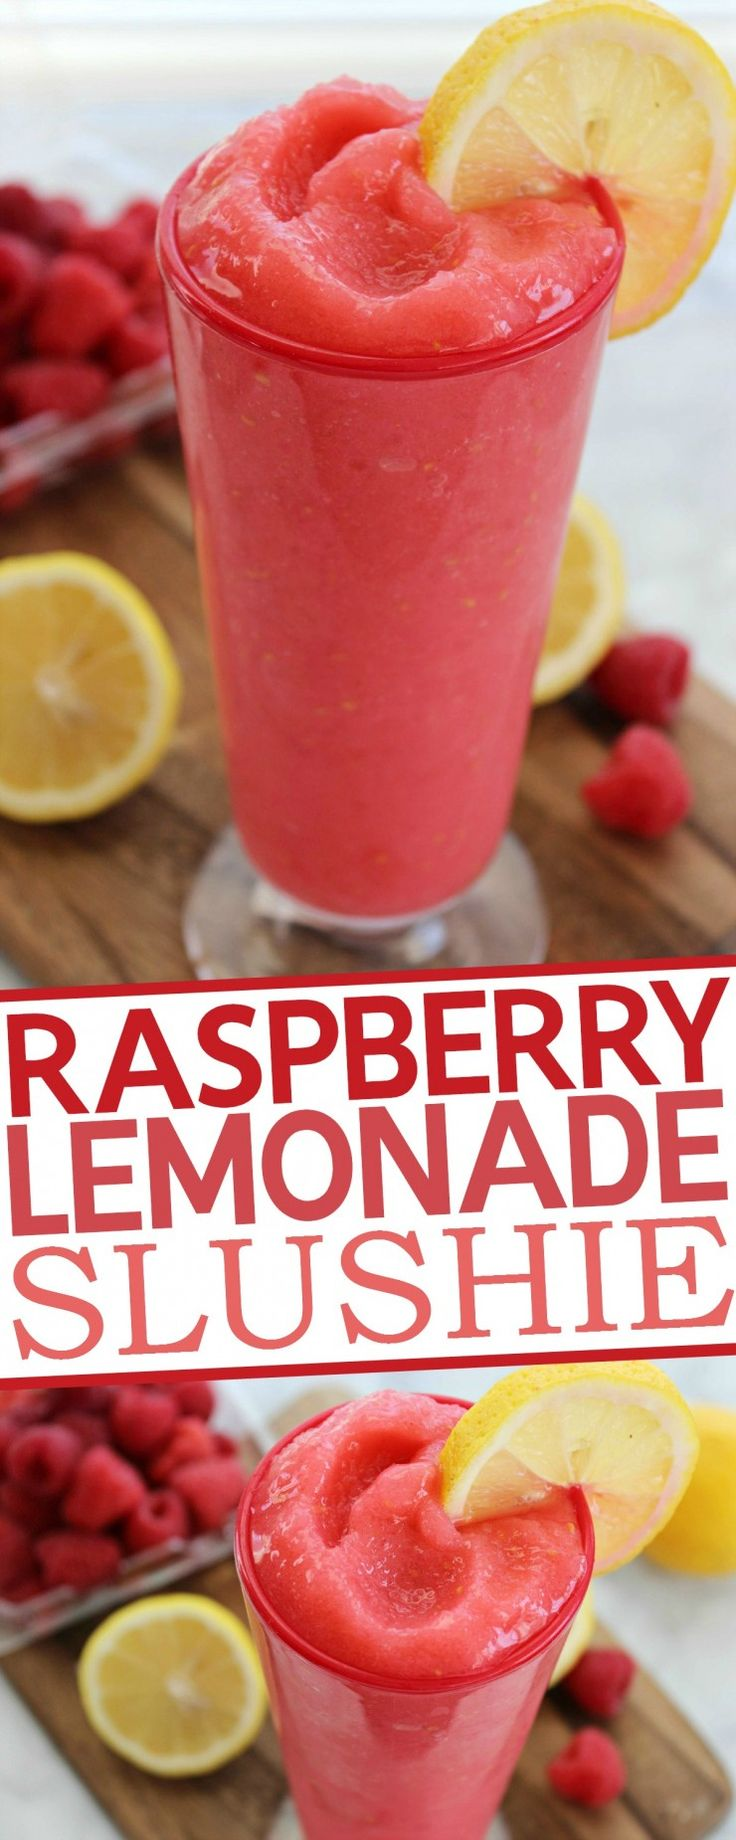 Raspberry Lemonade Slushie Recipe INGREDIENTS 2 cup fresh Raspberries (frozen) Juice of 2 Lemons 1/2 cup Sugar 2 cup Ice Cubes  DIRECTIONS Toss ingredients in blender and blend until ready.